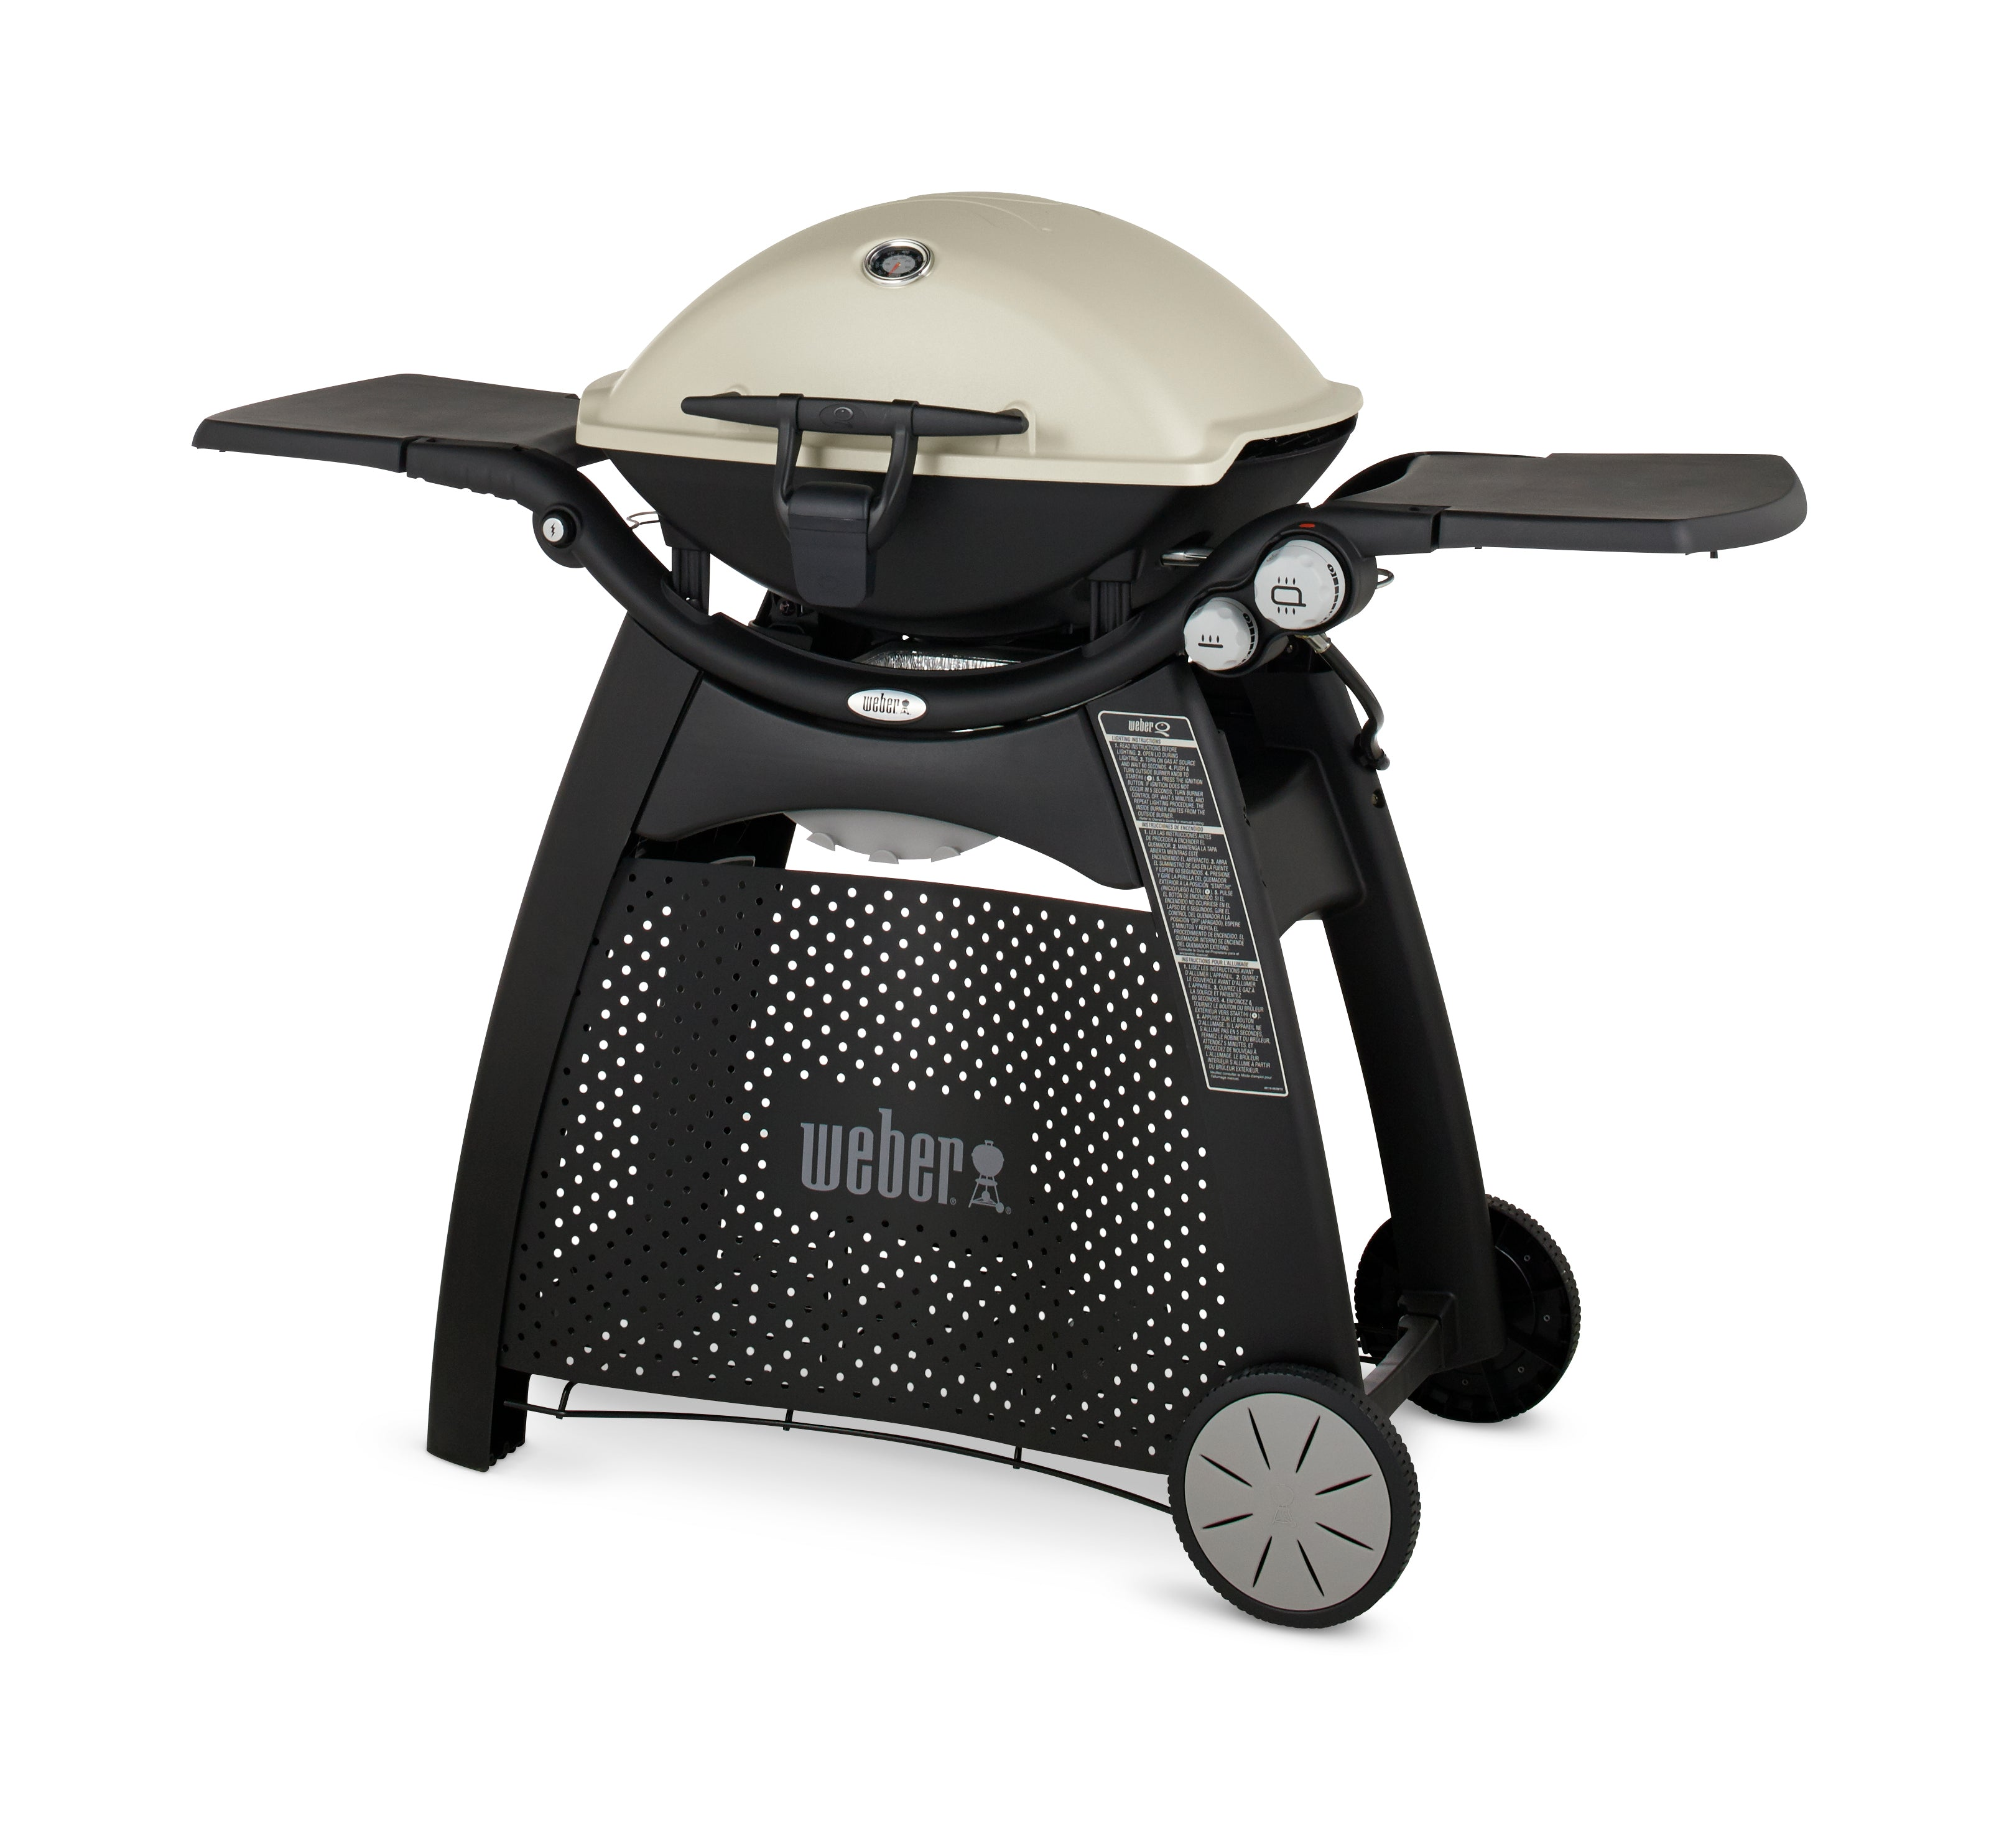 Weber Q 3200 Natural Gas Grill - 57067001